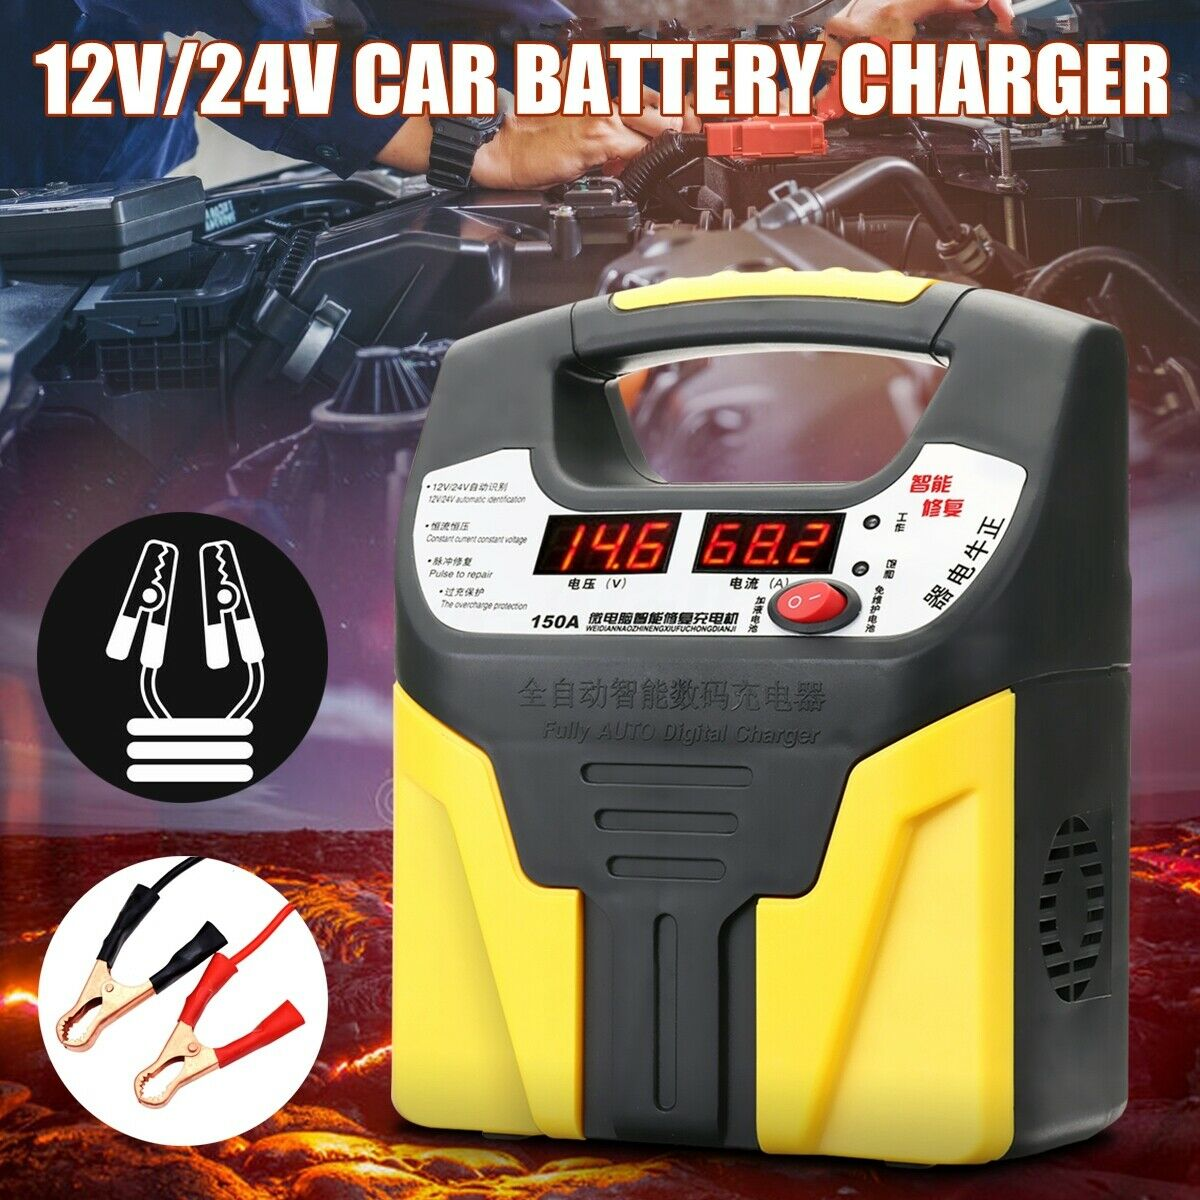 360W 12V/24V Car Battery Charger Intelligent Pulse Repair Jump Starter Booster